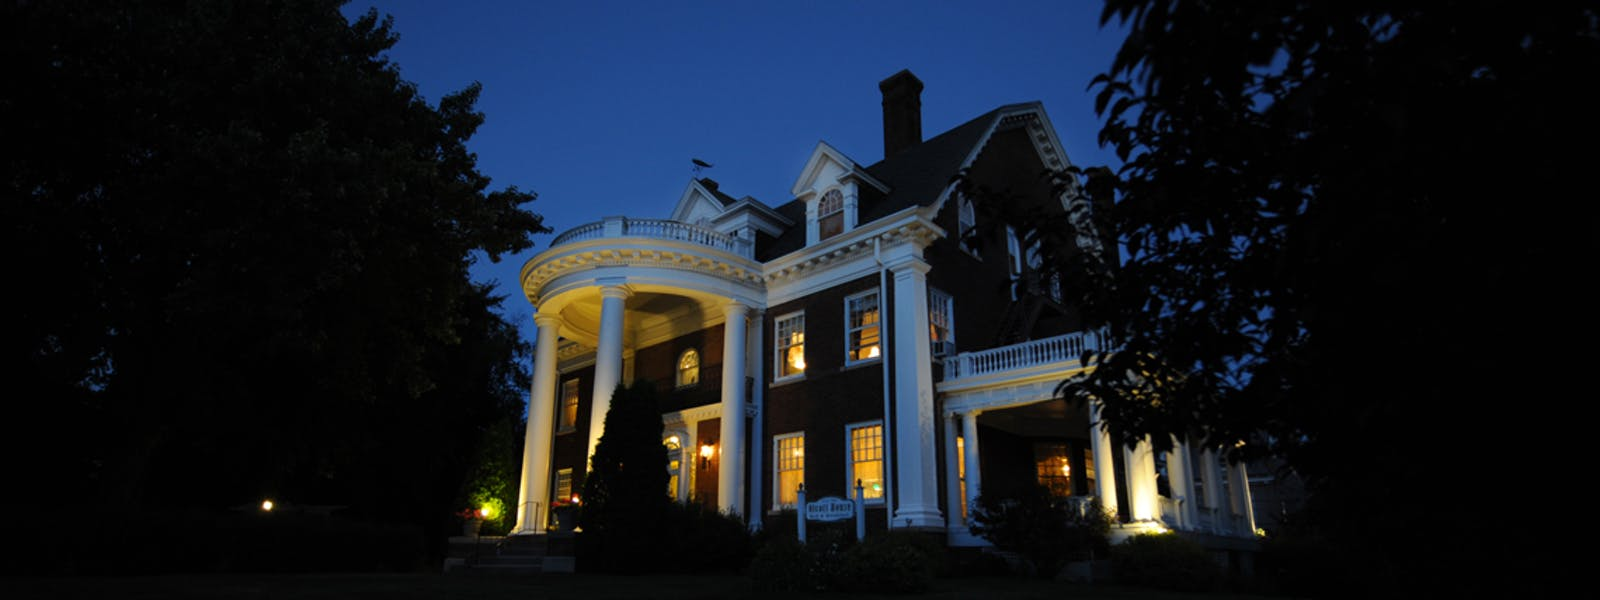 Olcott House exterior at dusk